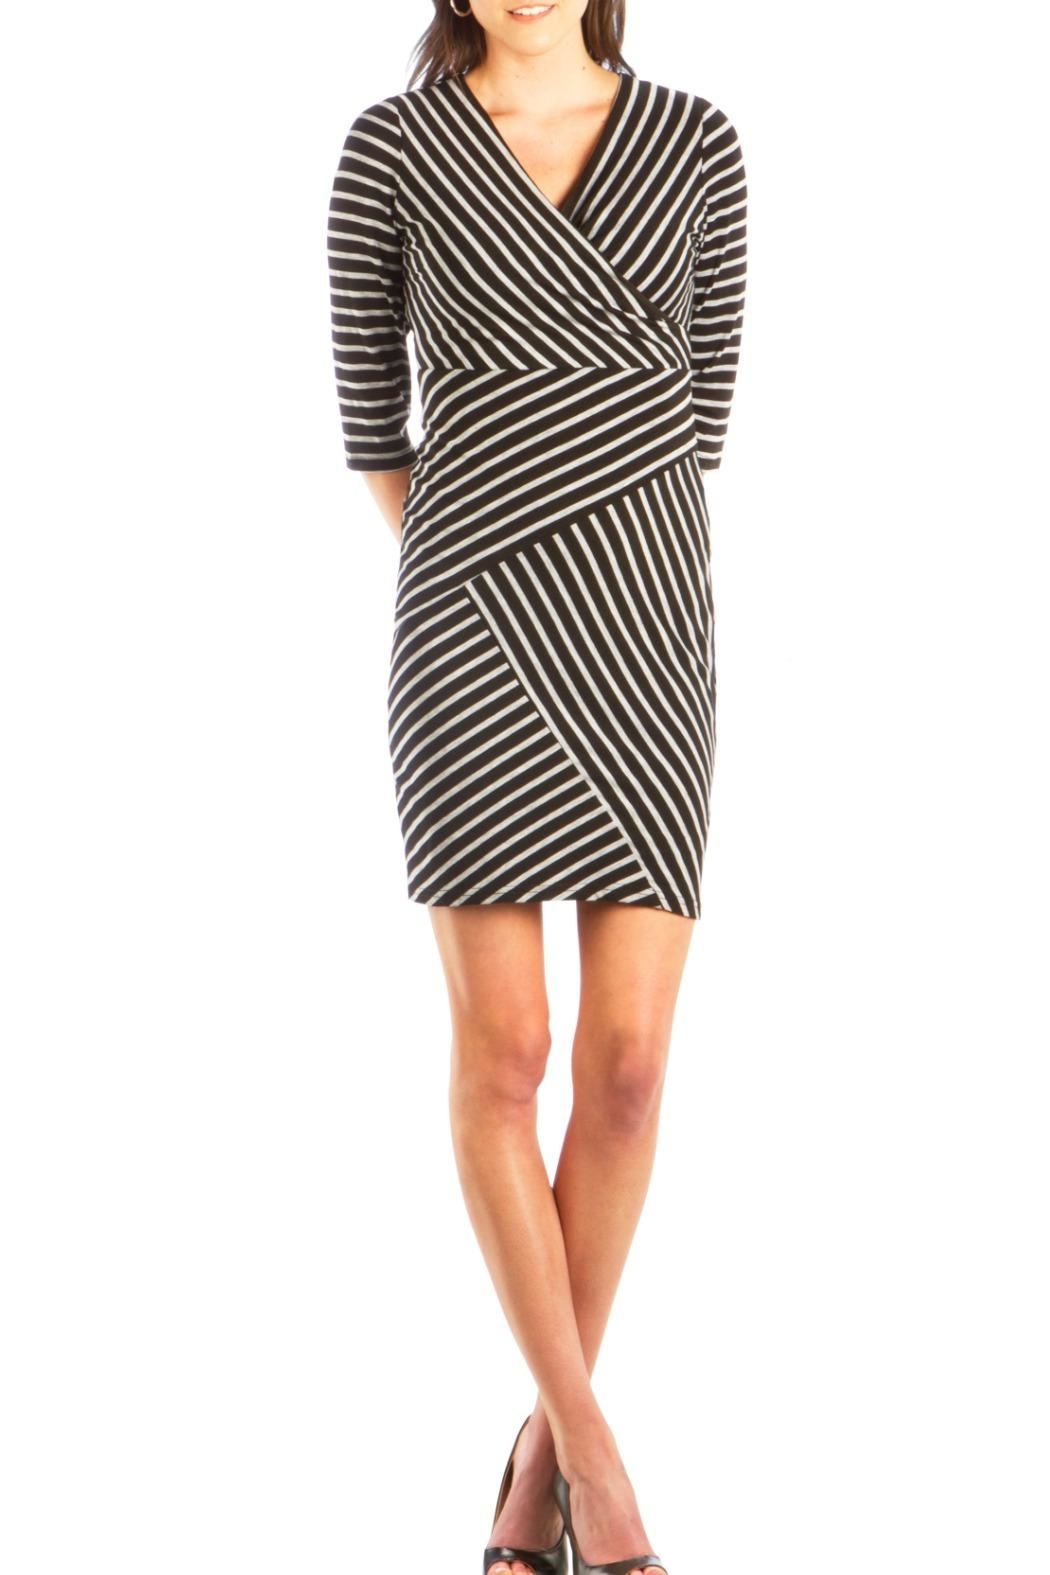 Neesha Black Striped Dress - Front Cropped Image